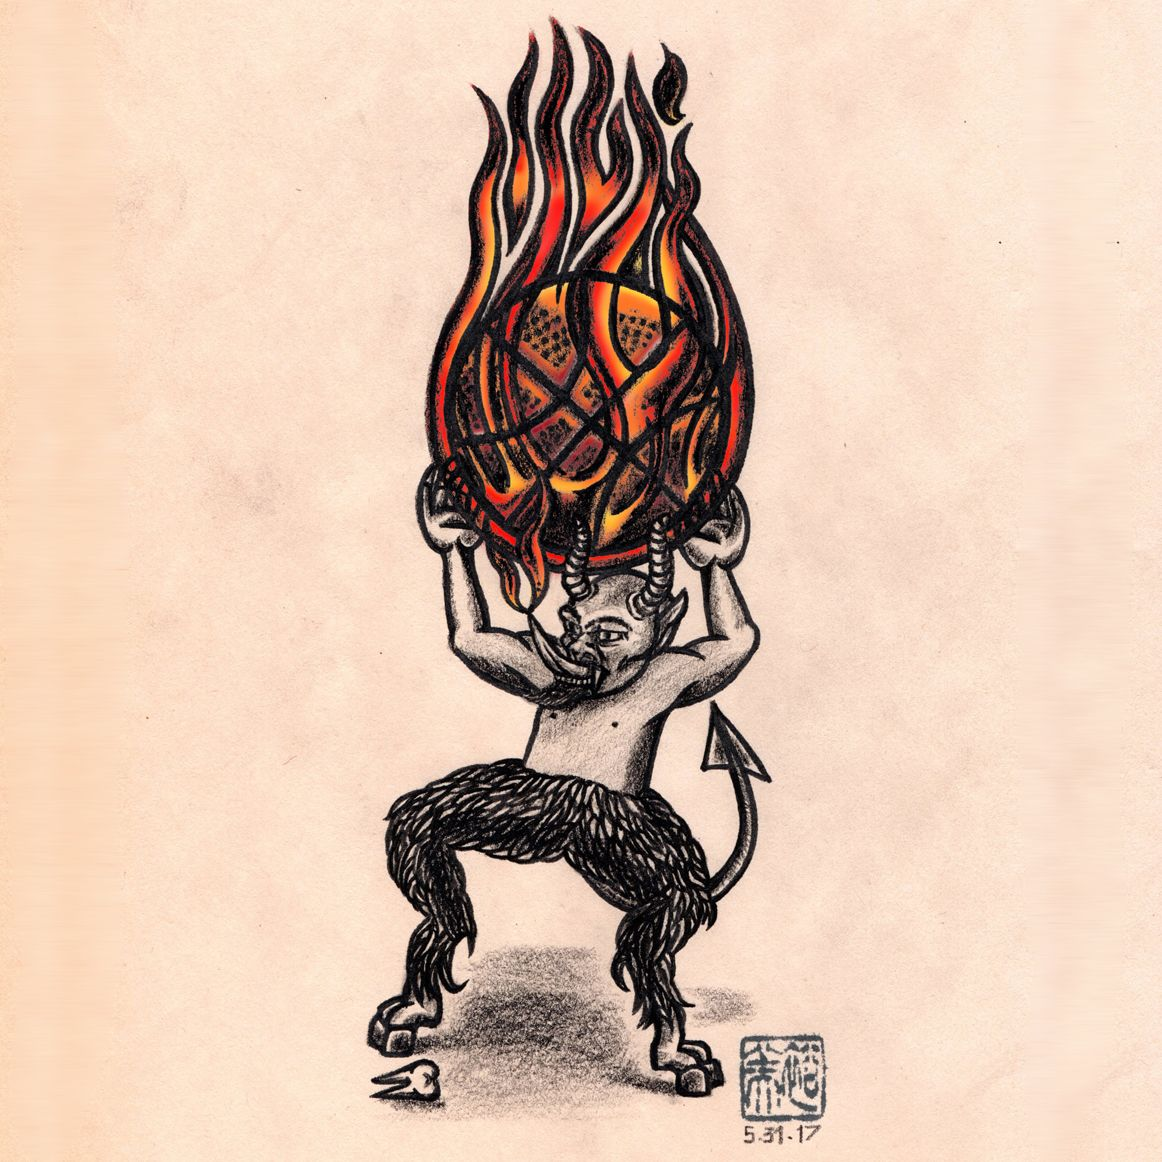 my Lil kdevil throws the big fire ball into my heart. - Black colored Pencil, Pen on Paper. and put some color by photoshop. 6/1/2017